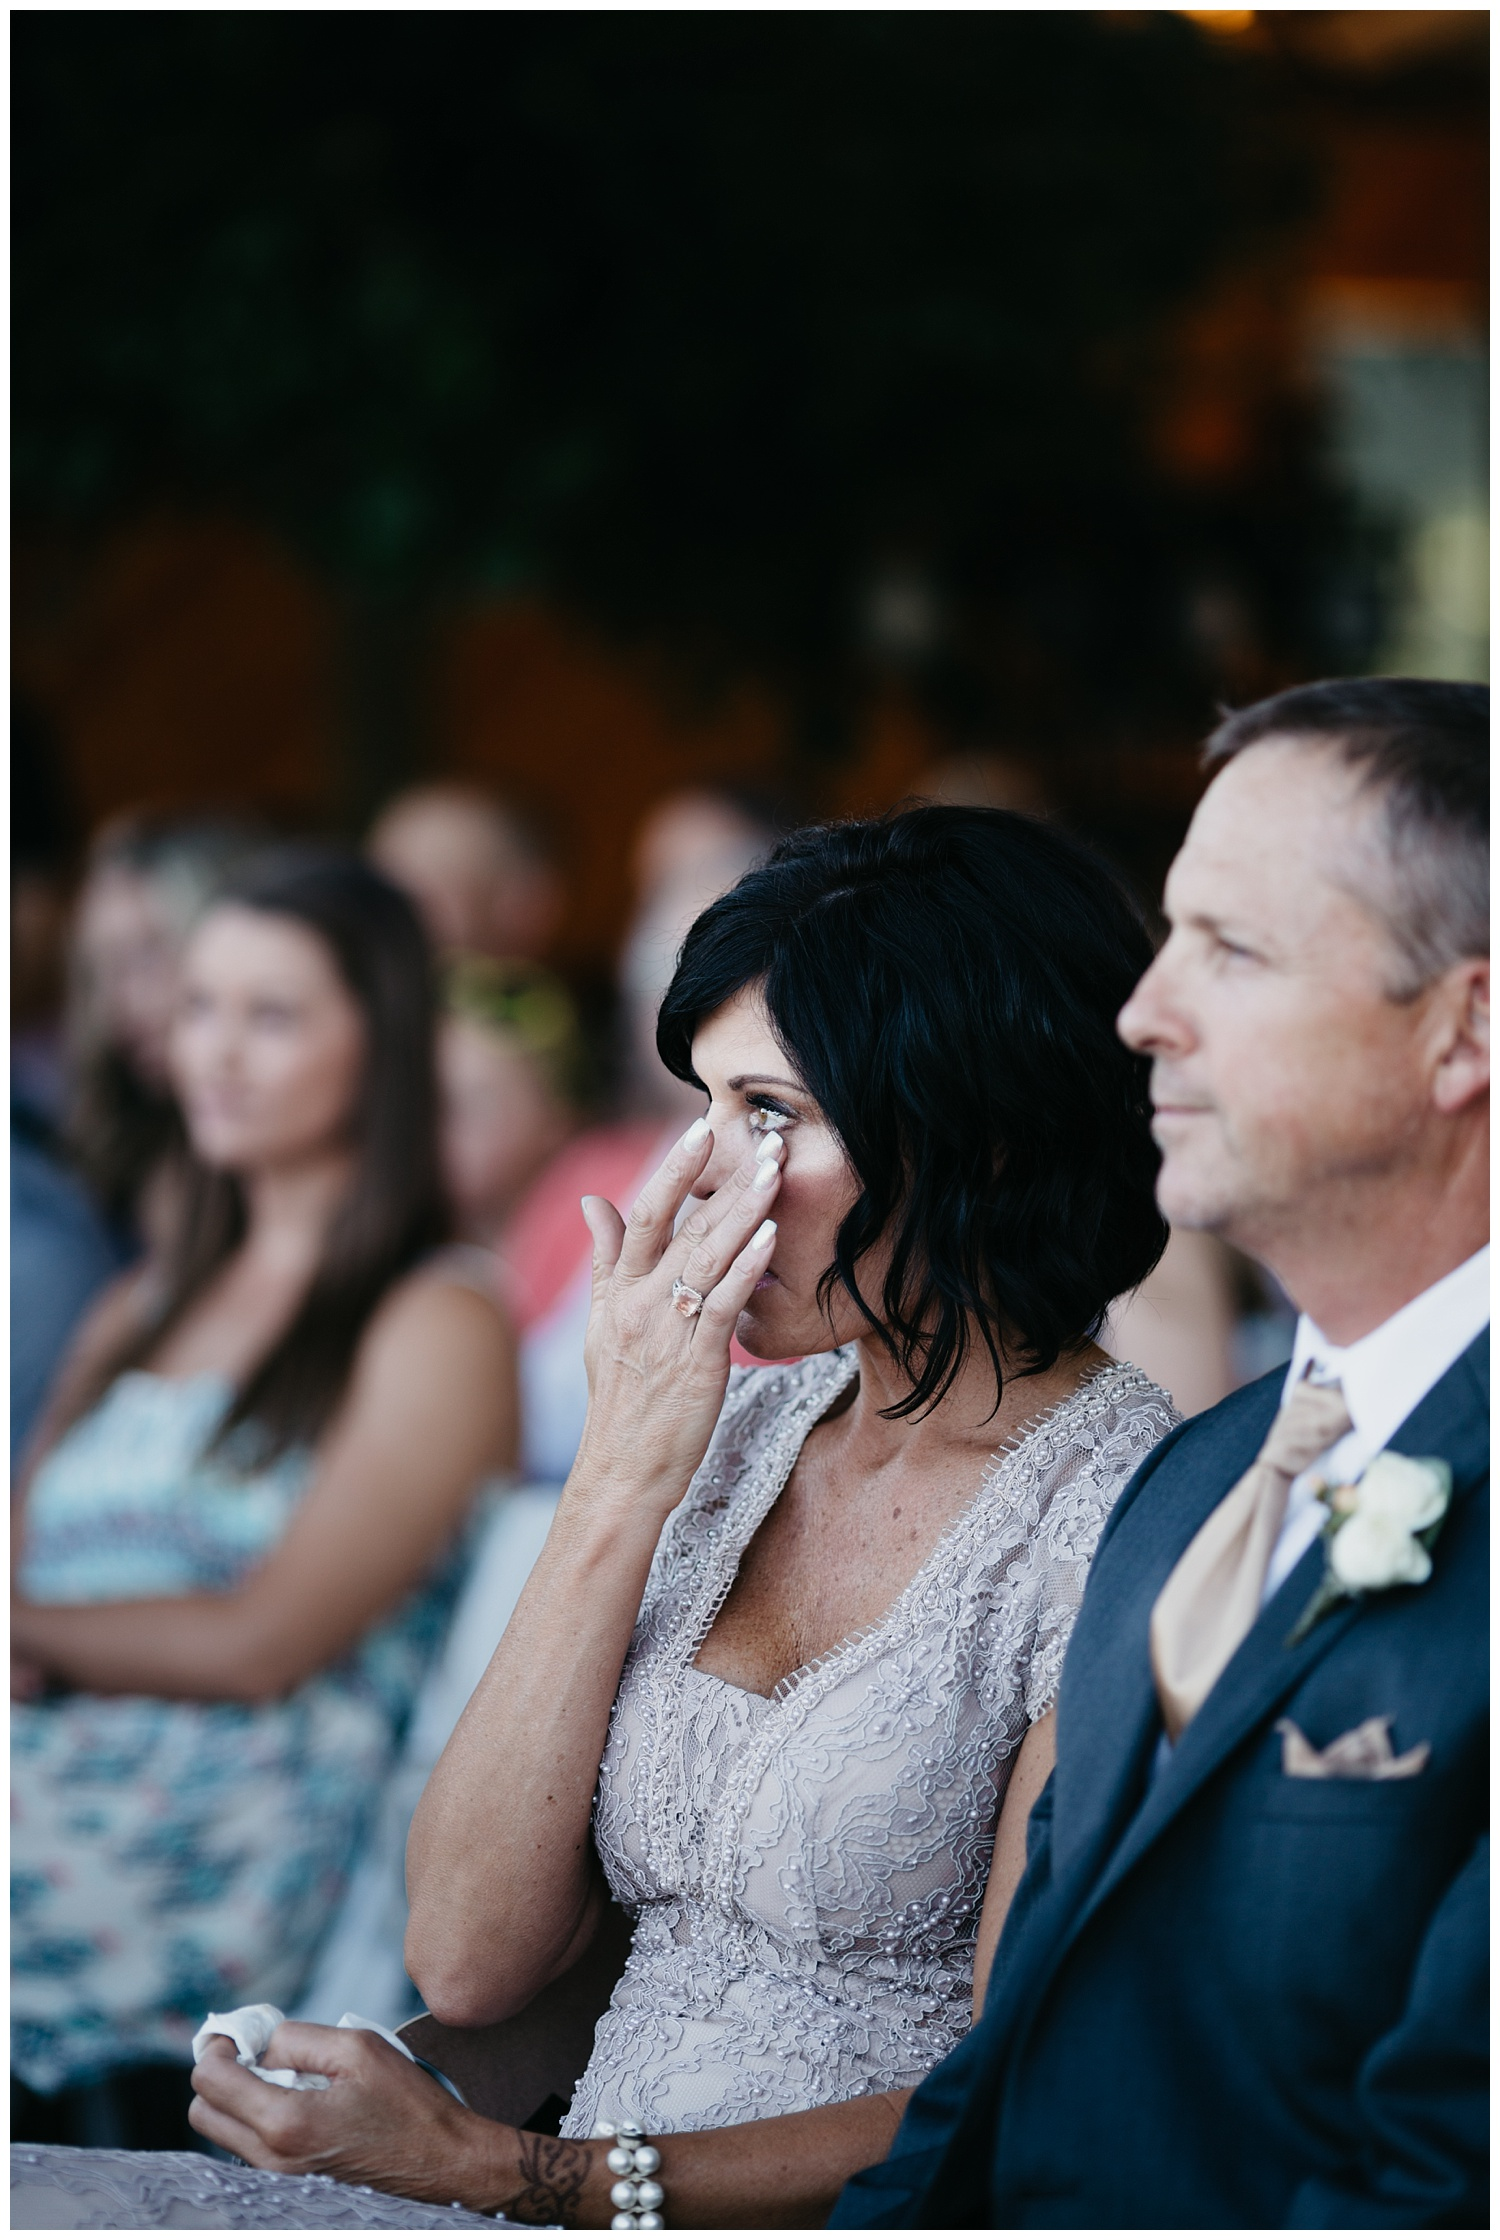 SeattleWeddingPhotographer_0163.jpg